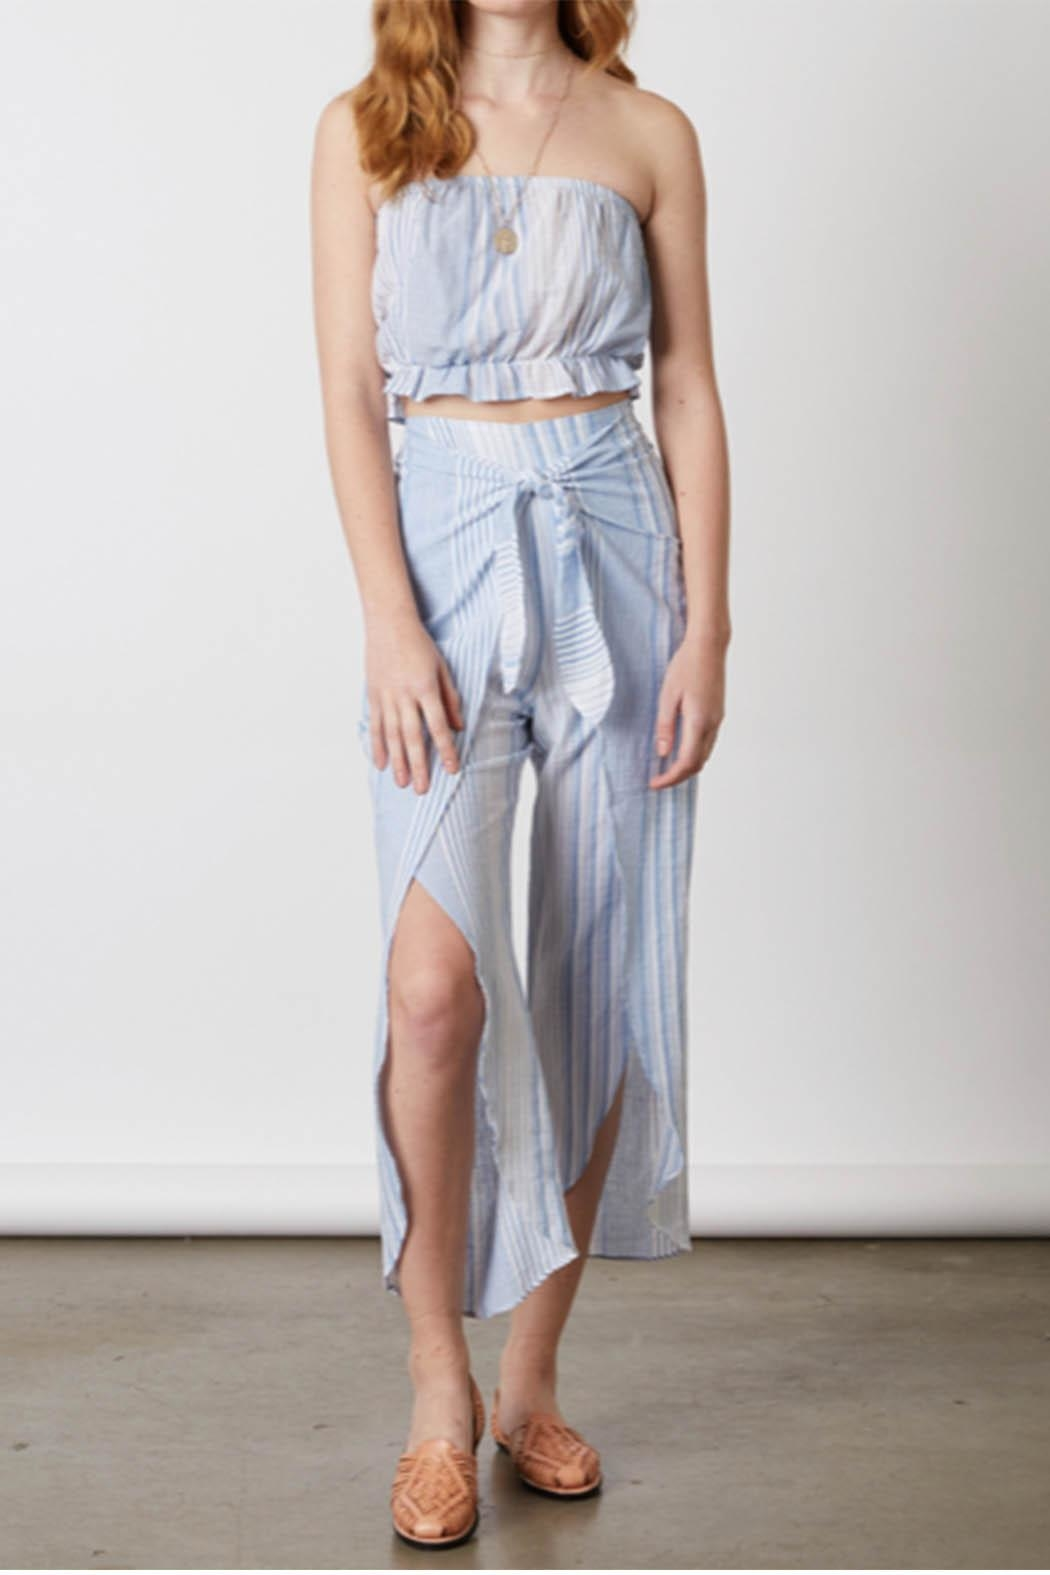 Cotton Candy Chambray Two Piece - Main Image